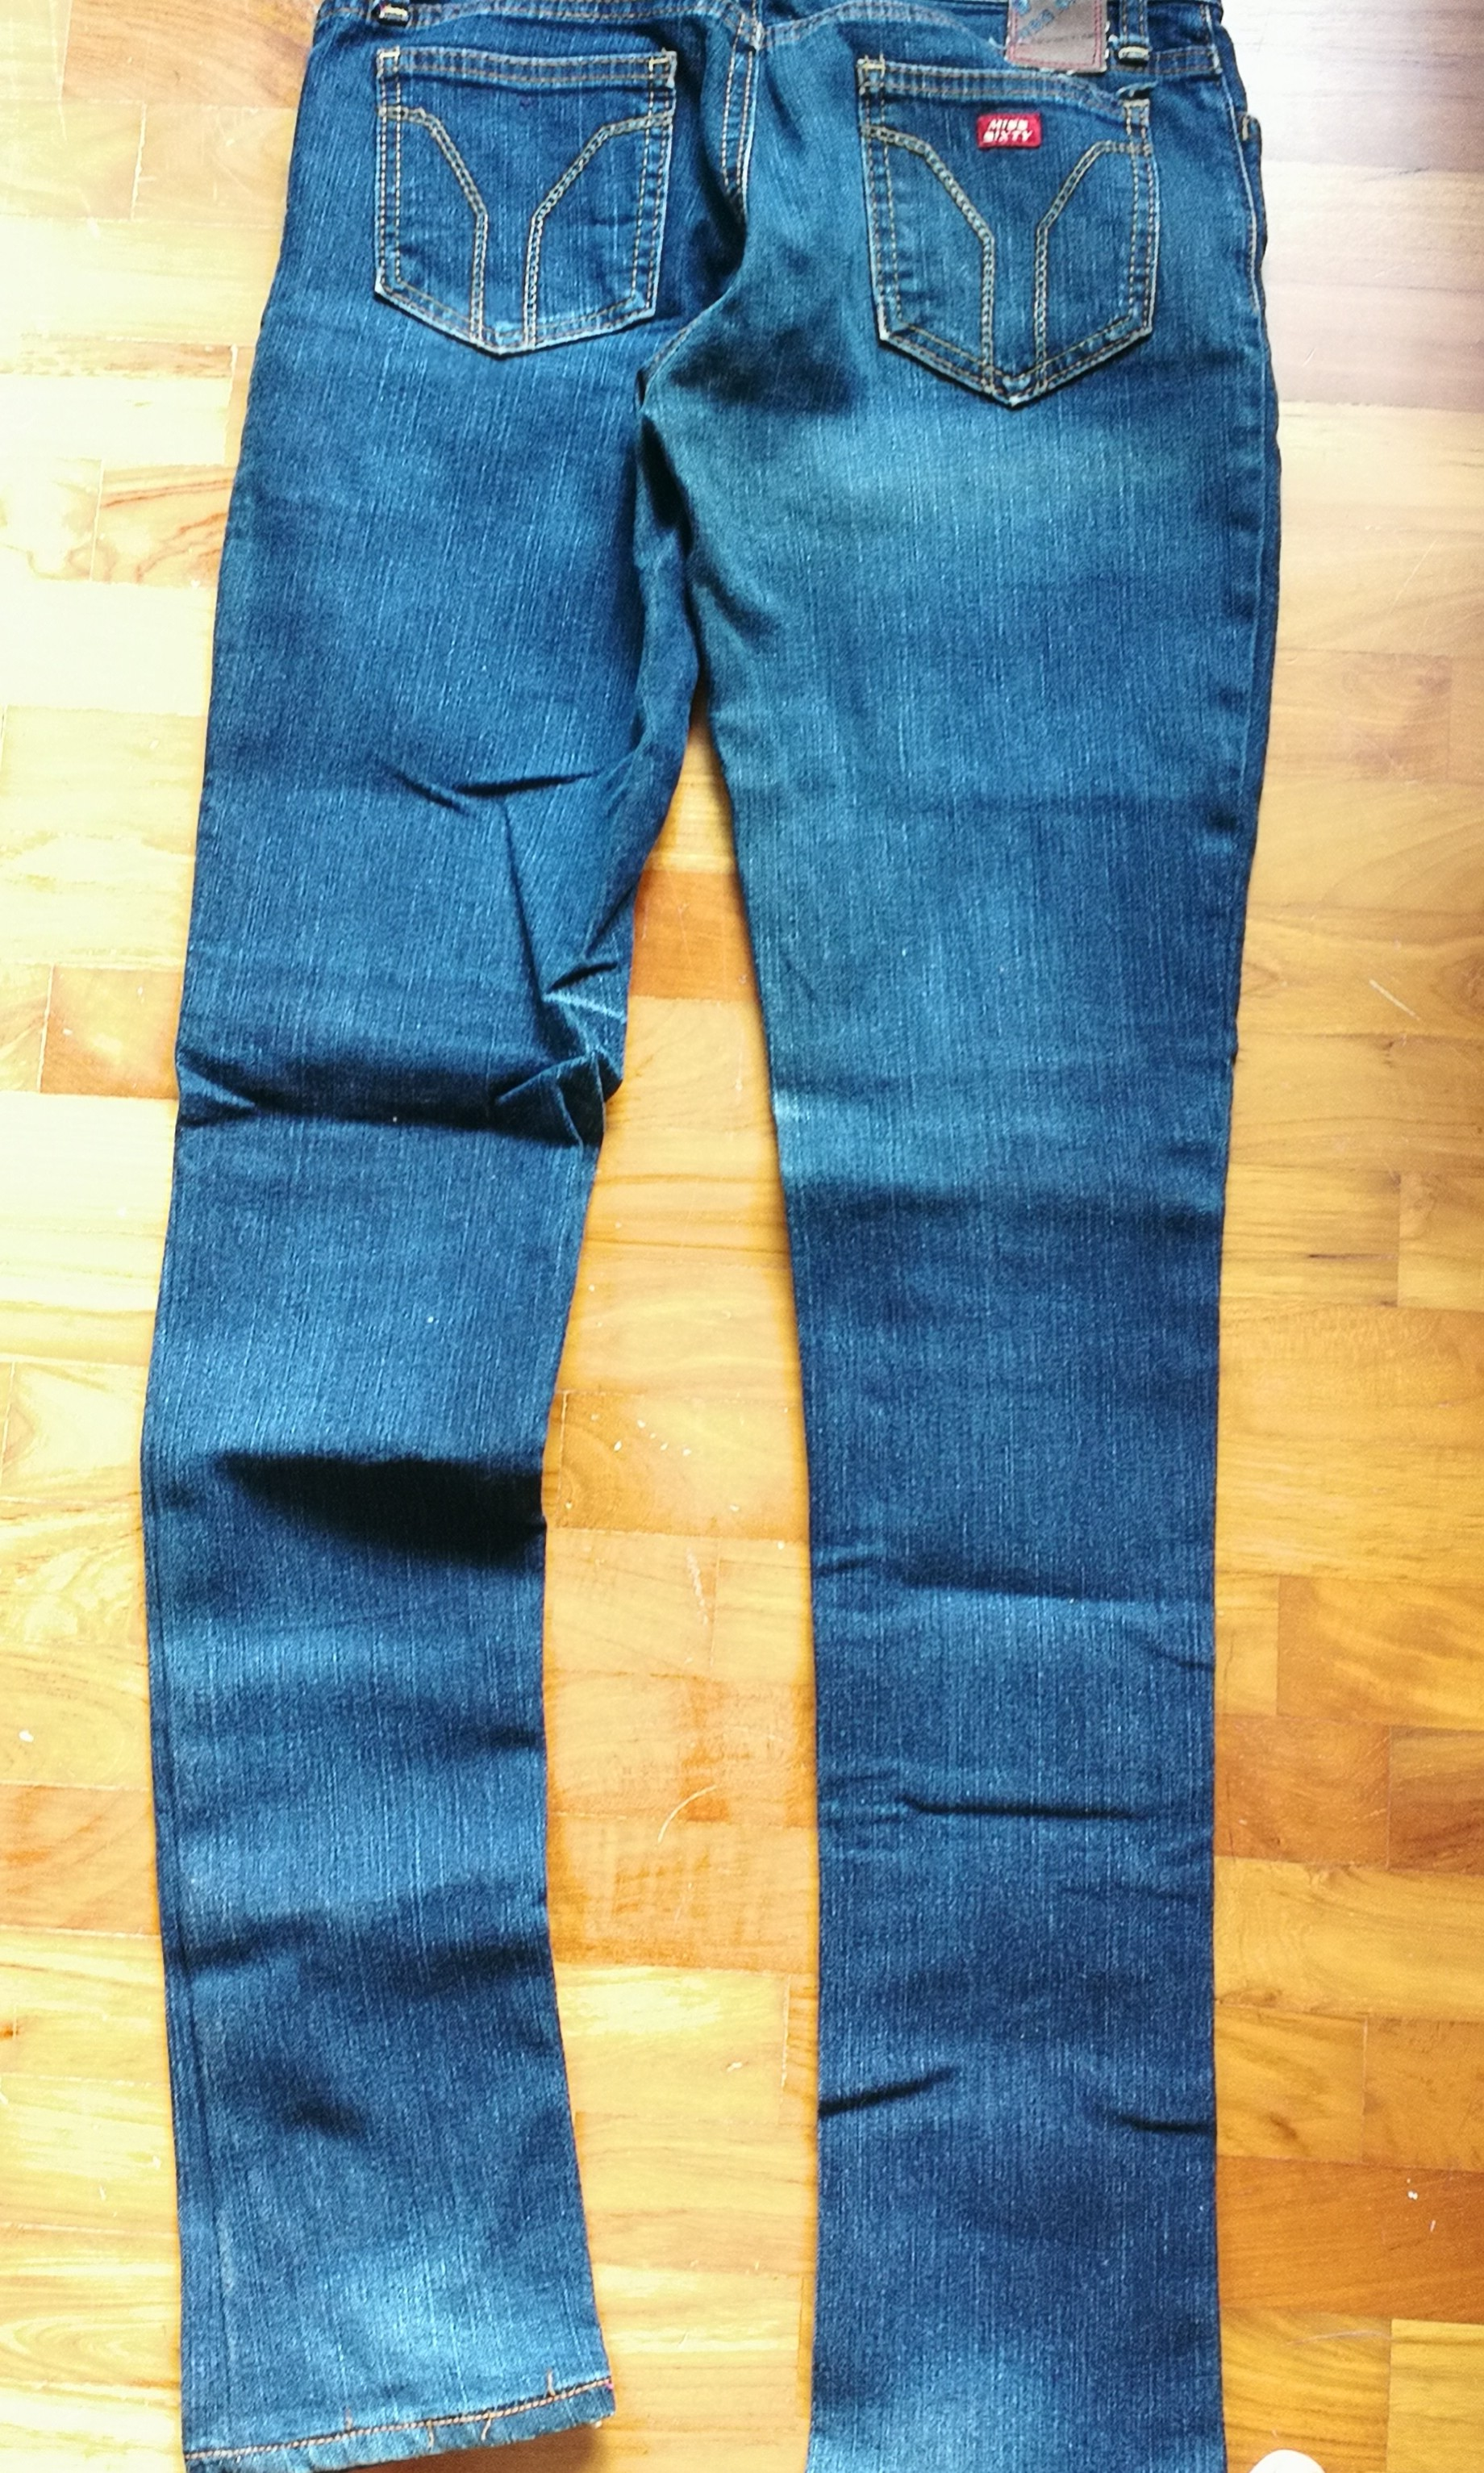 1ac22cb74 Miss Sixty extra low waist jeans, Women's Fashion, Clothes, Pants ...